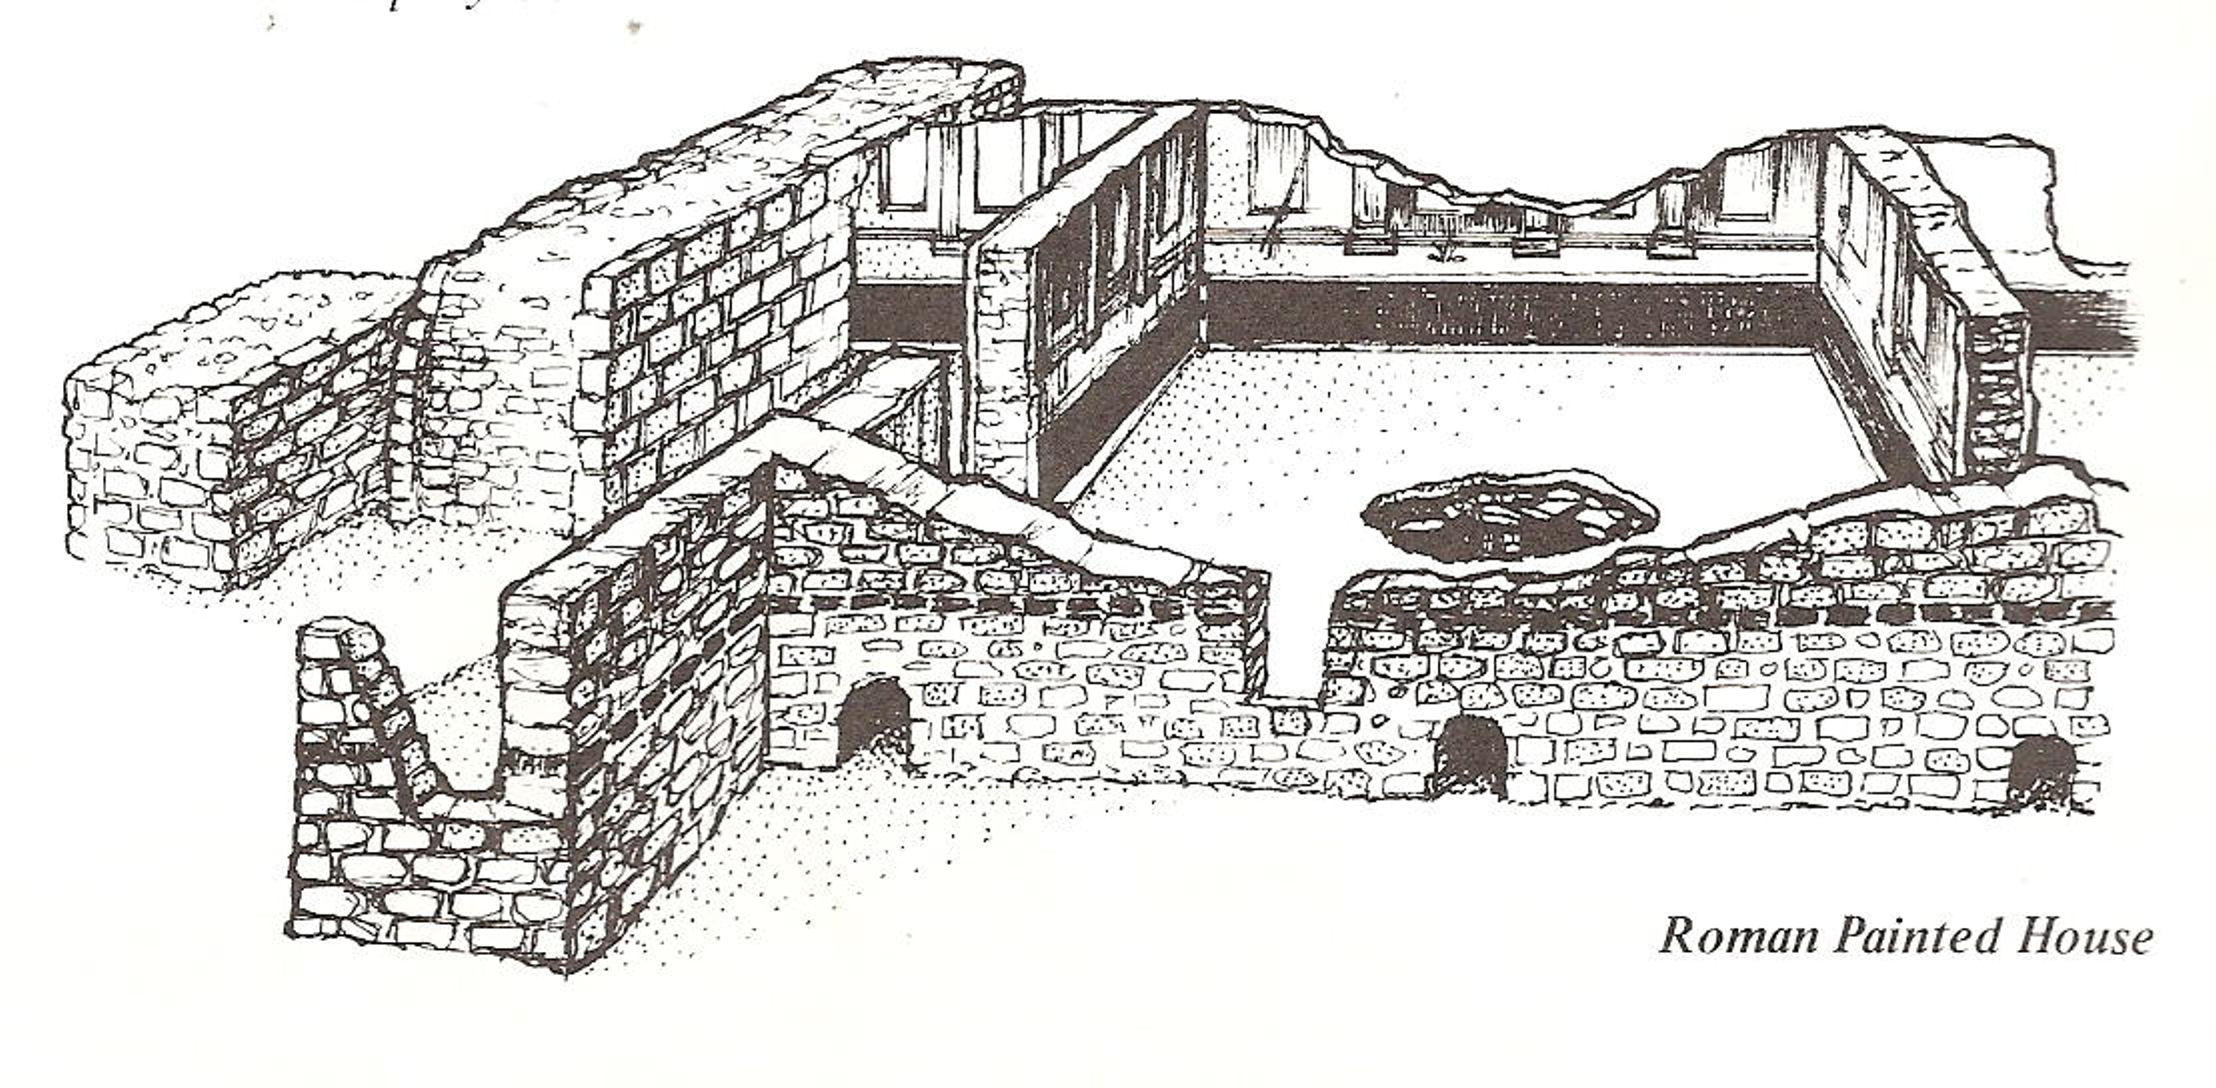 Roman Painted House The Southeast, Roman Painted House | The Dover Historian